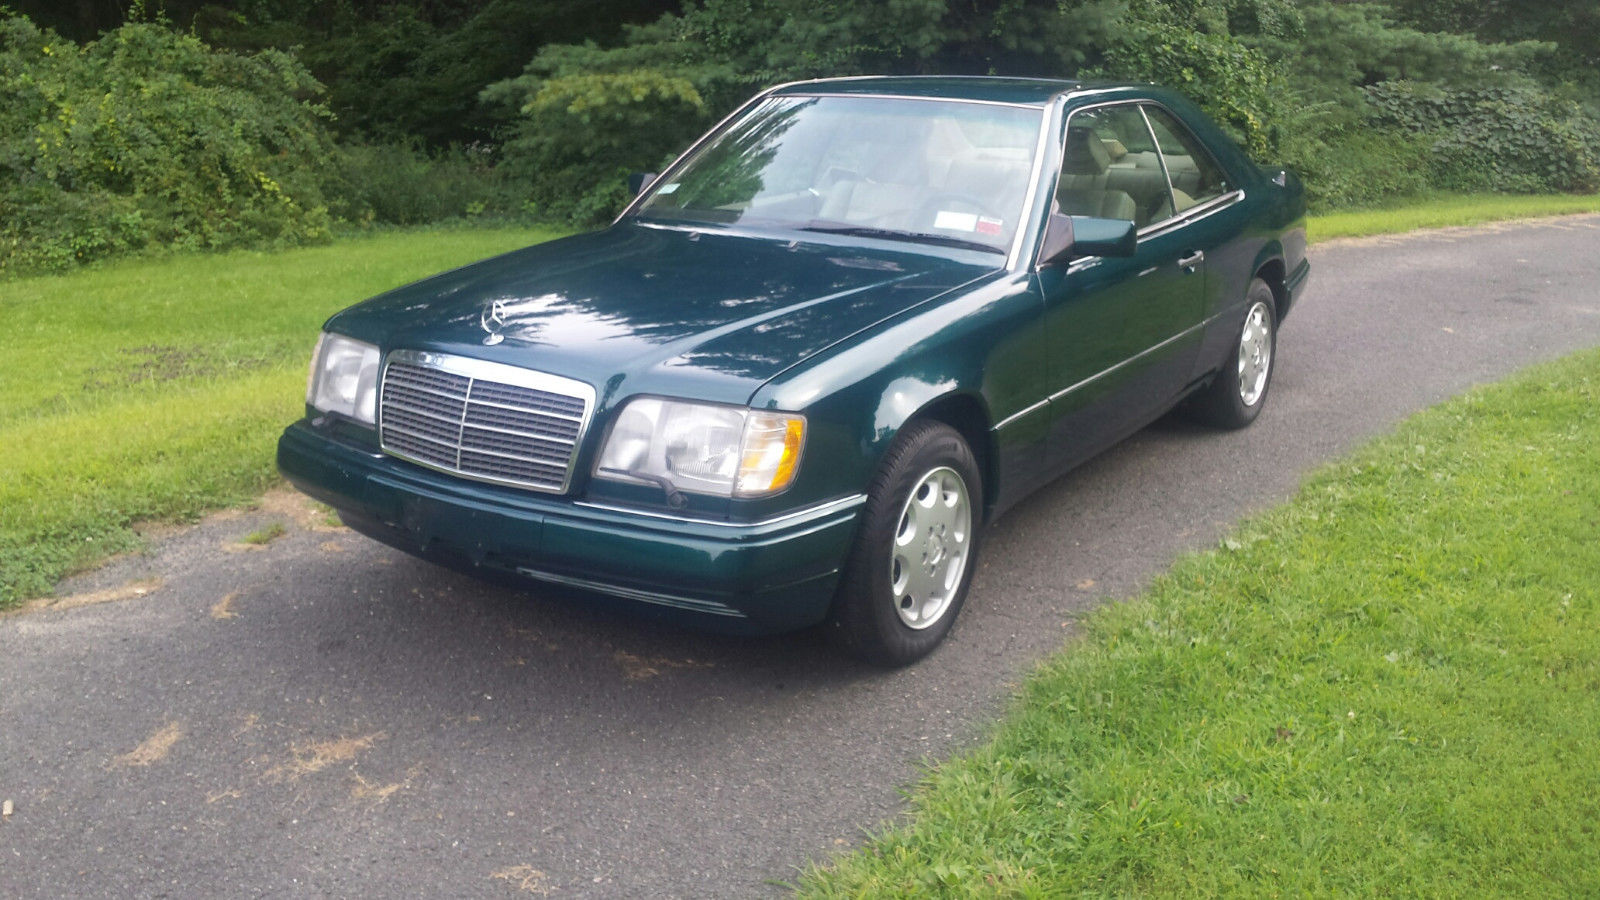 1994 mercedes benz e class e 320 coupe 2d w124 e320 coupe 2 owner tourmaline green runs great fresh paint needs nothing 2018 2019 24carshop com 1994 mercedes benz e class e 320 coupe